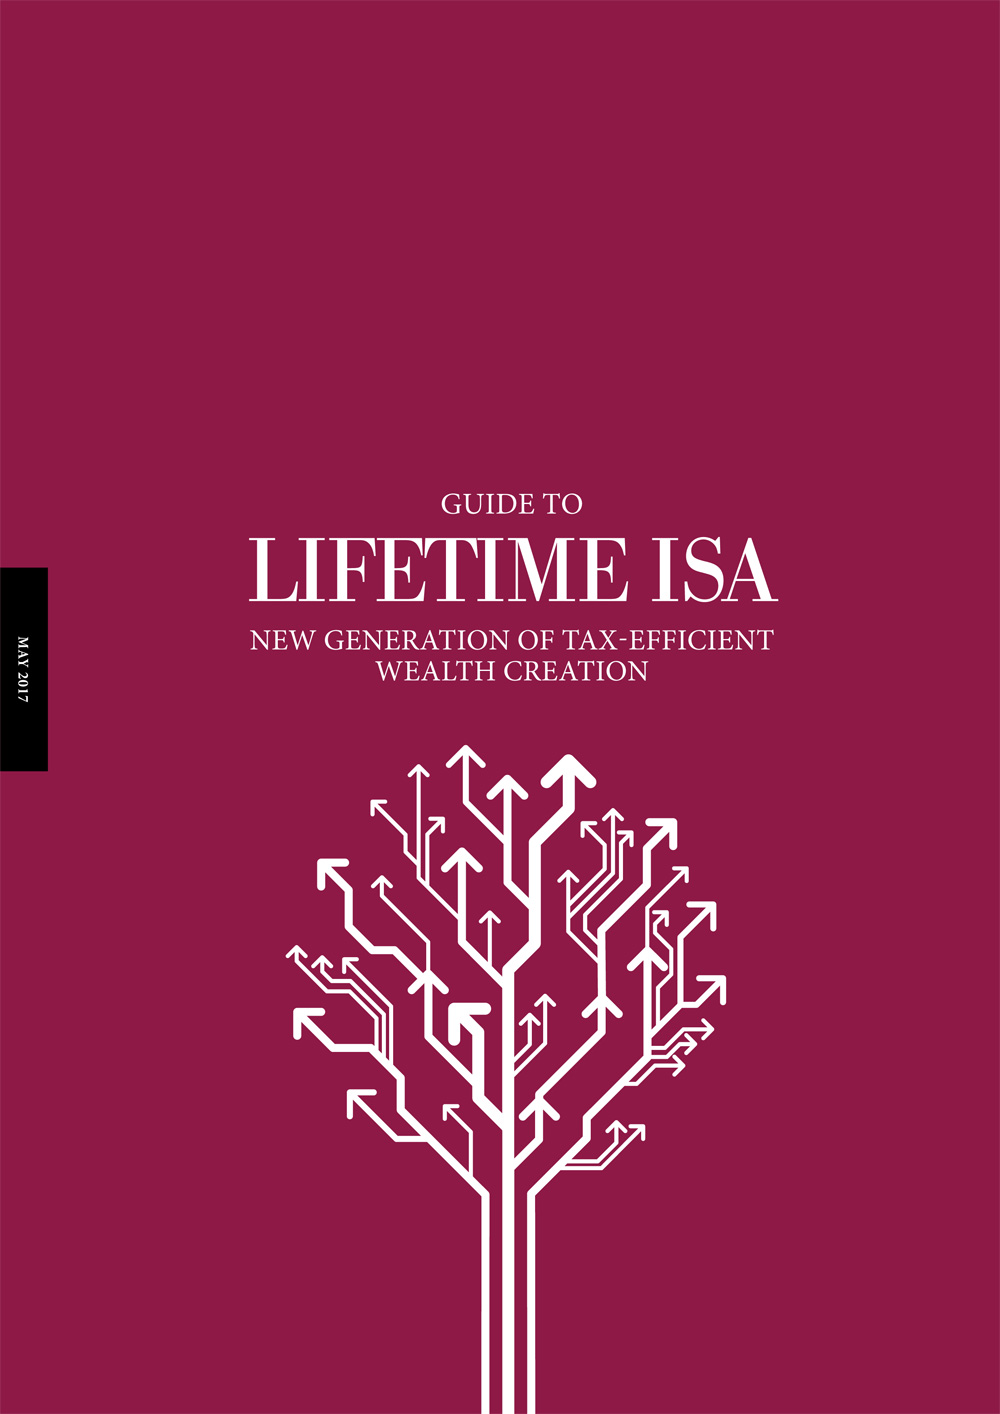 Guide To Lifetime ISAs